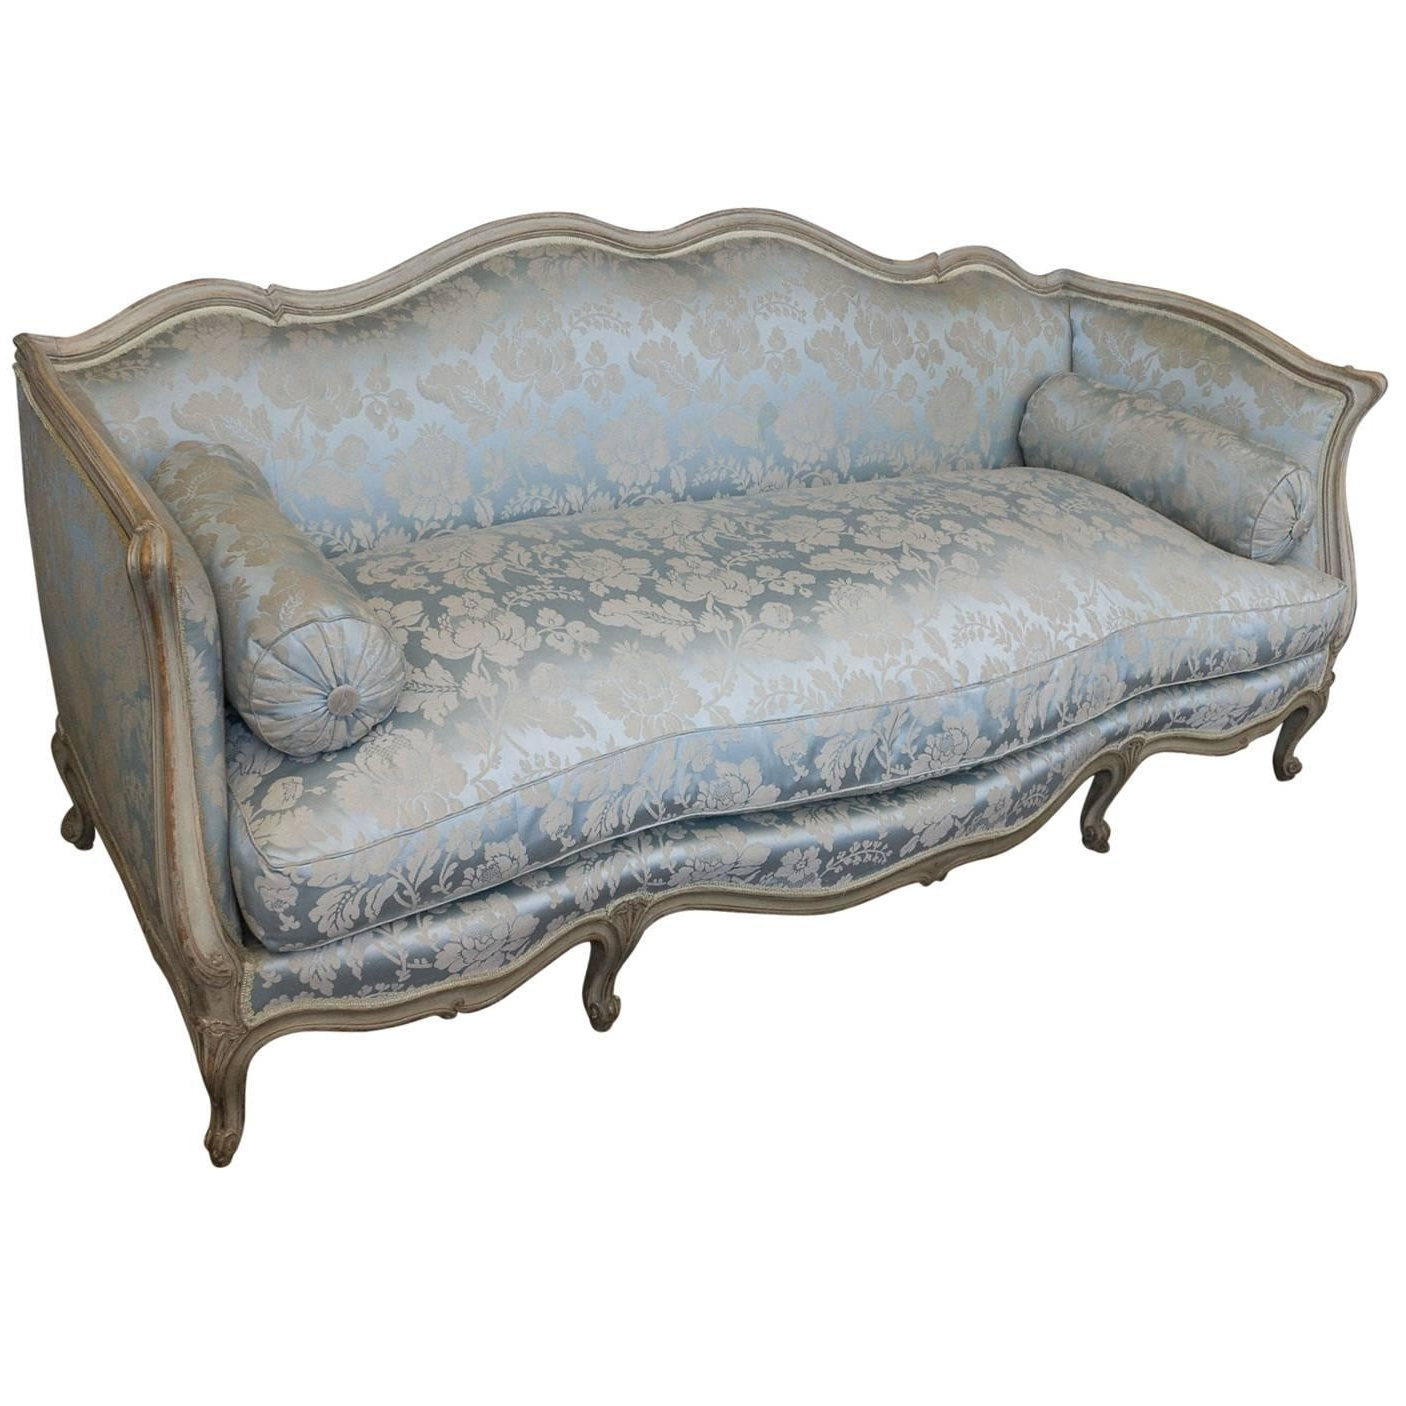 Most Recently Released French Louis Xv Style Sofa Attributed To Maison Jansen For Sale At With French Style Sofas (View 15 of 15)